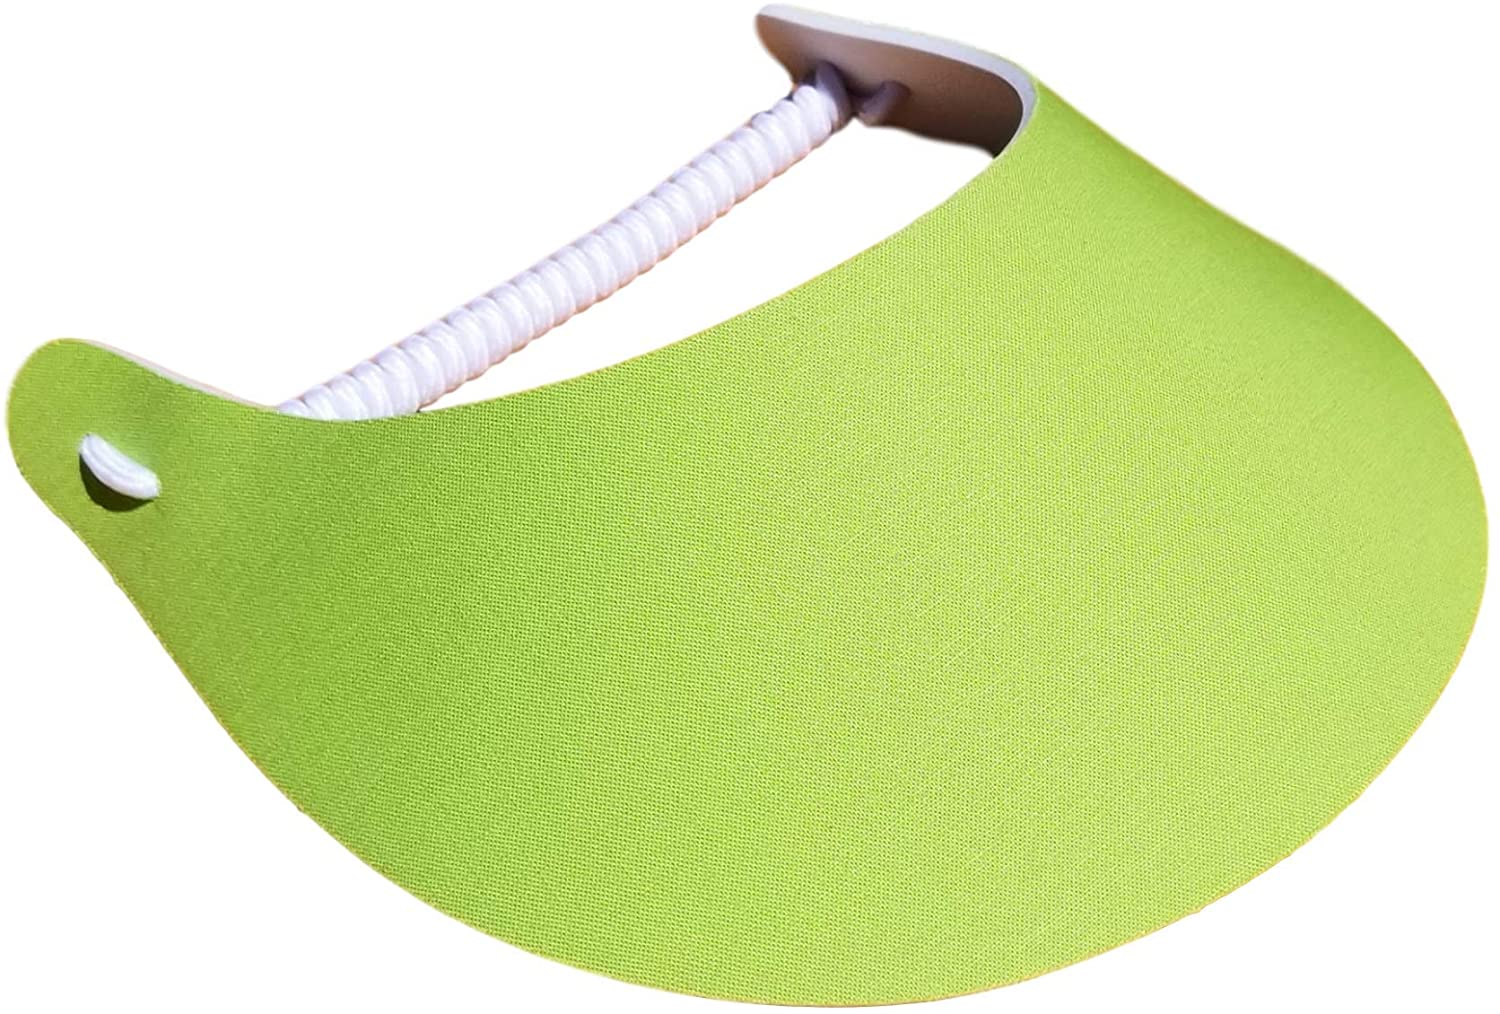 The Incredible Sunvisor Now on sale Available in Pe Colors Solid Beautiful Max 66% OFF